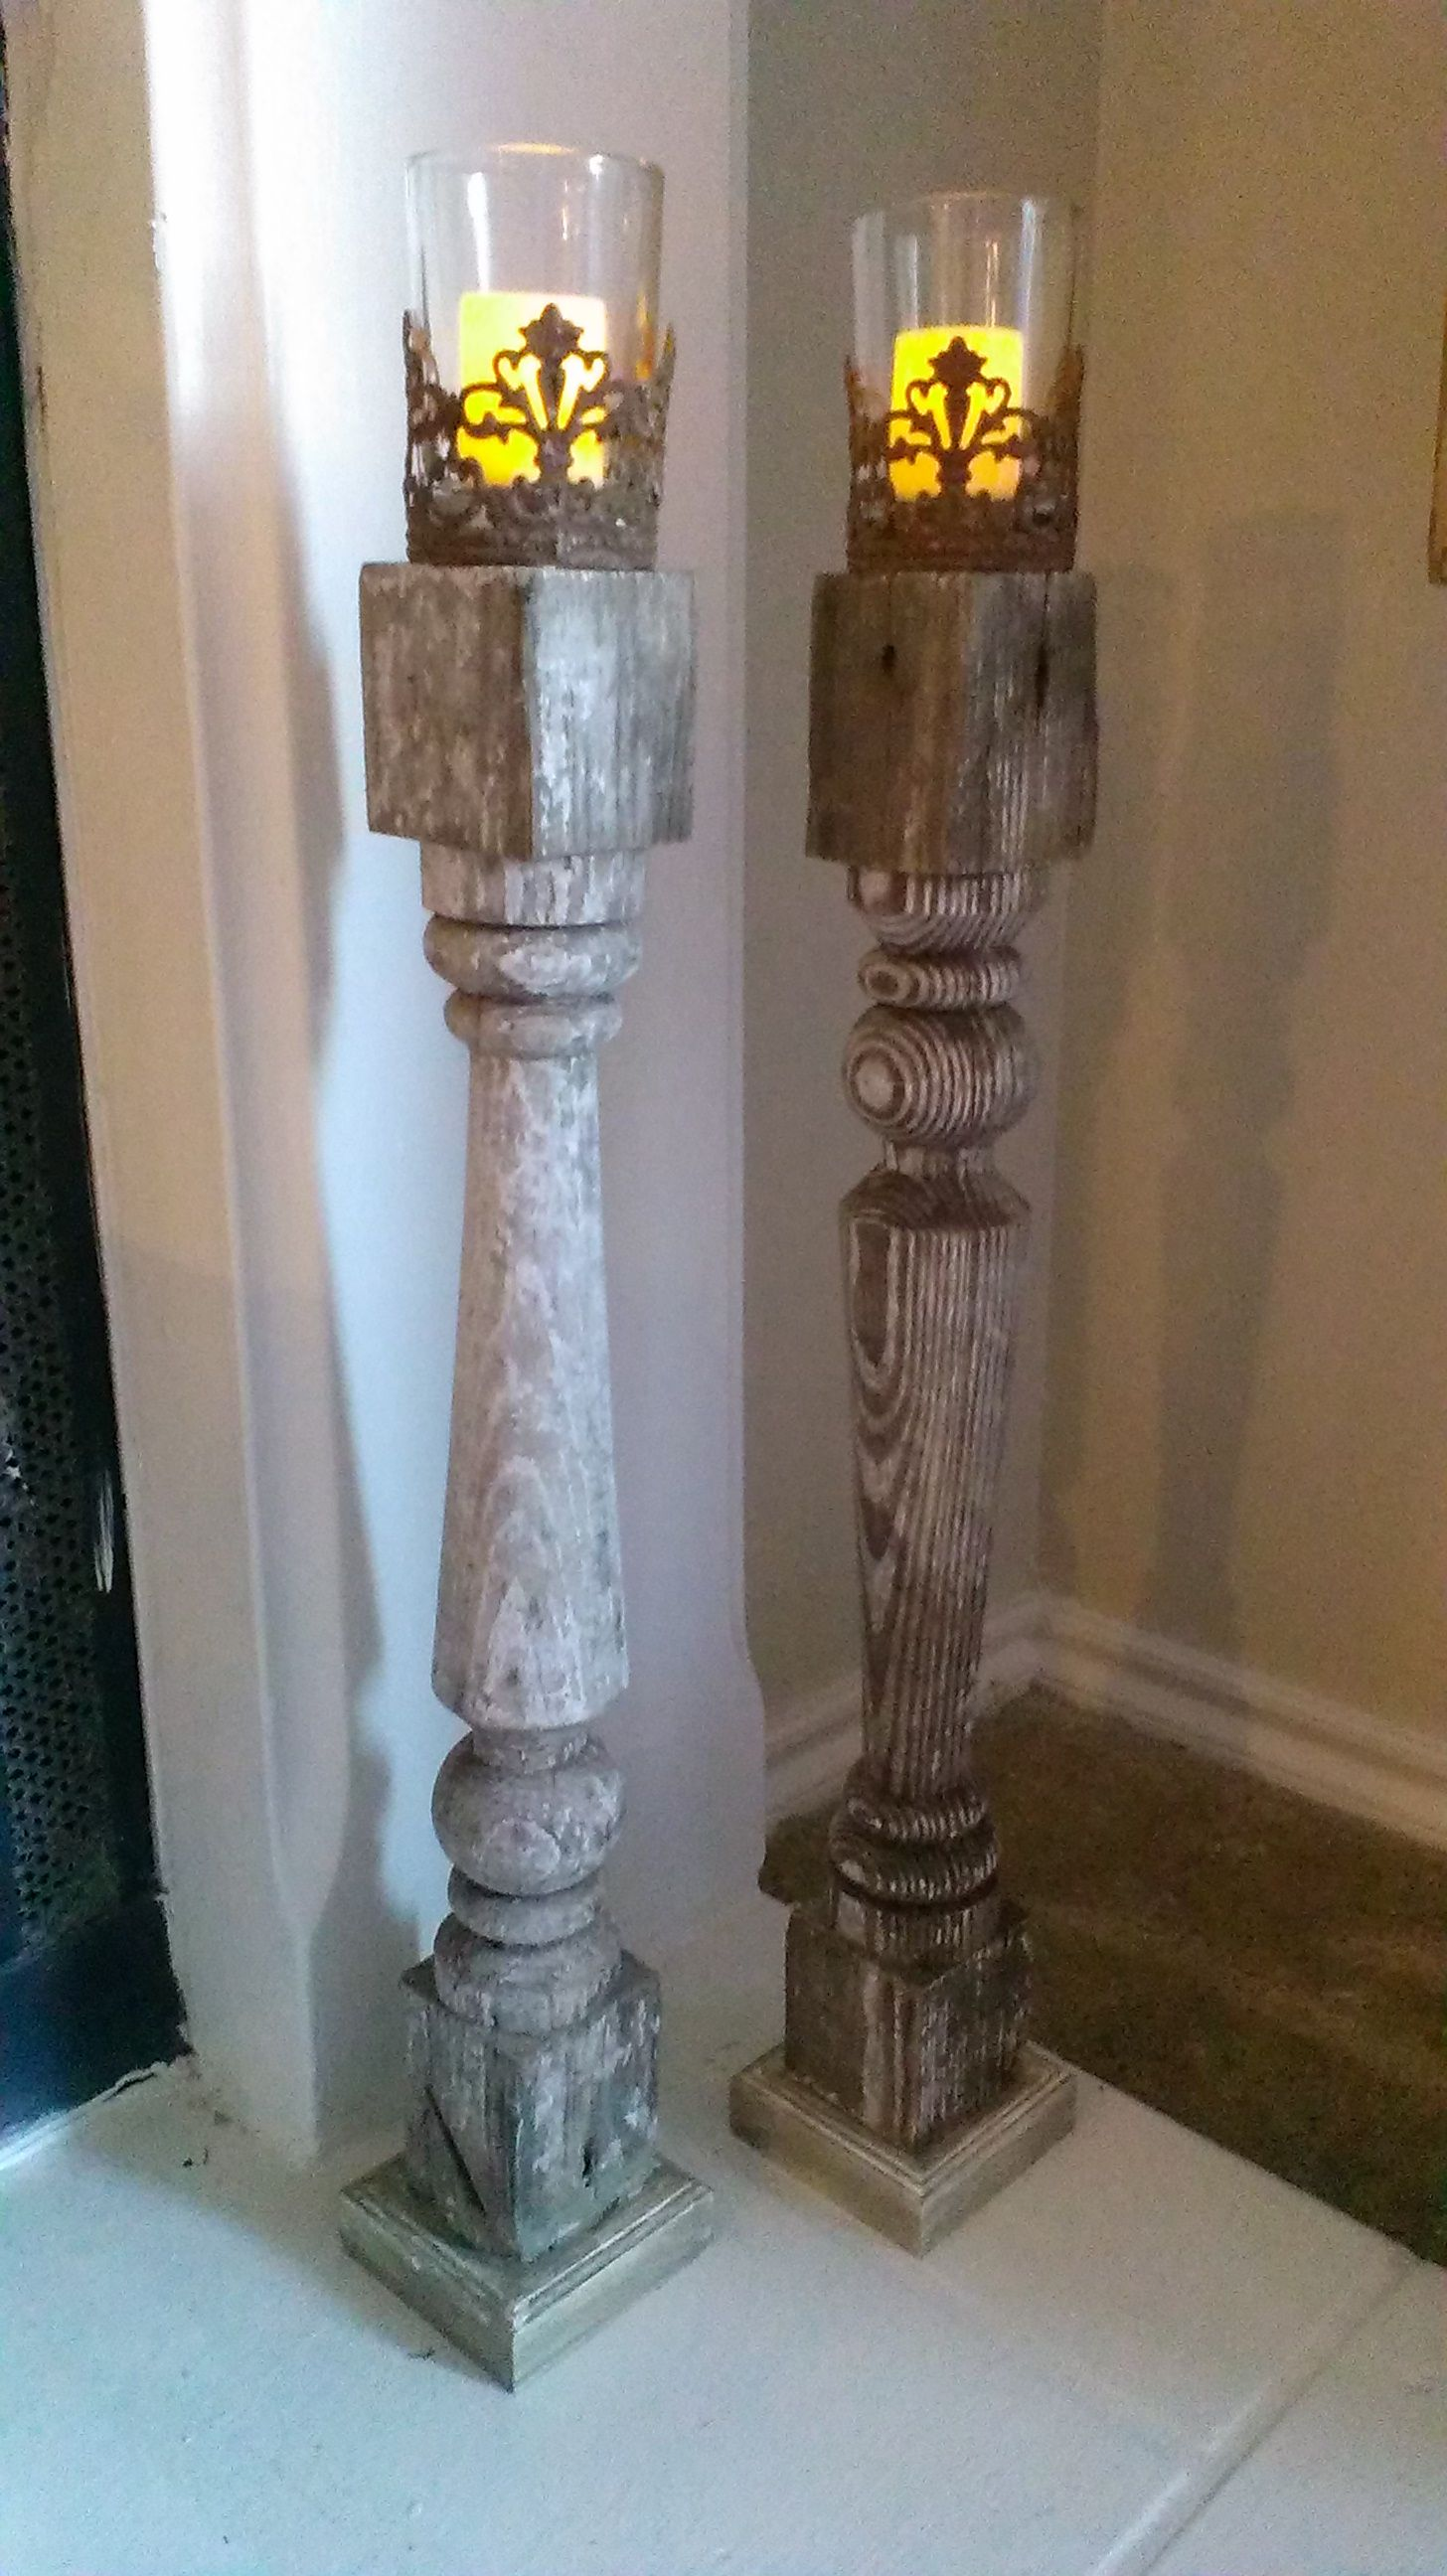 Wooden candle holders crafts - Porch Spindles Turned Into Shabby Chic Candle Sticks With The Help Of Some Craft Store Votive